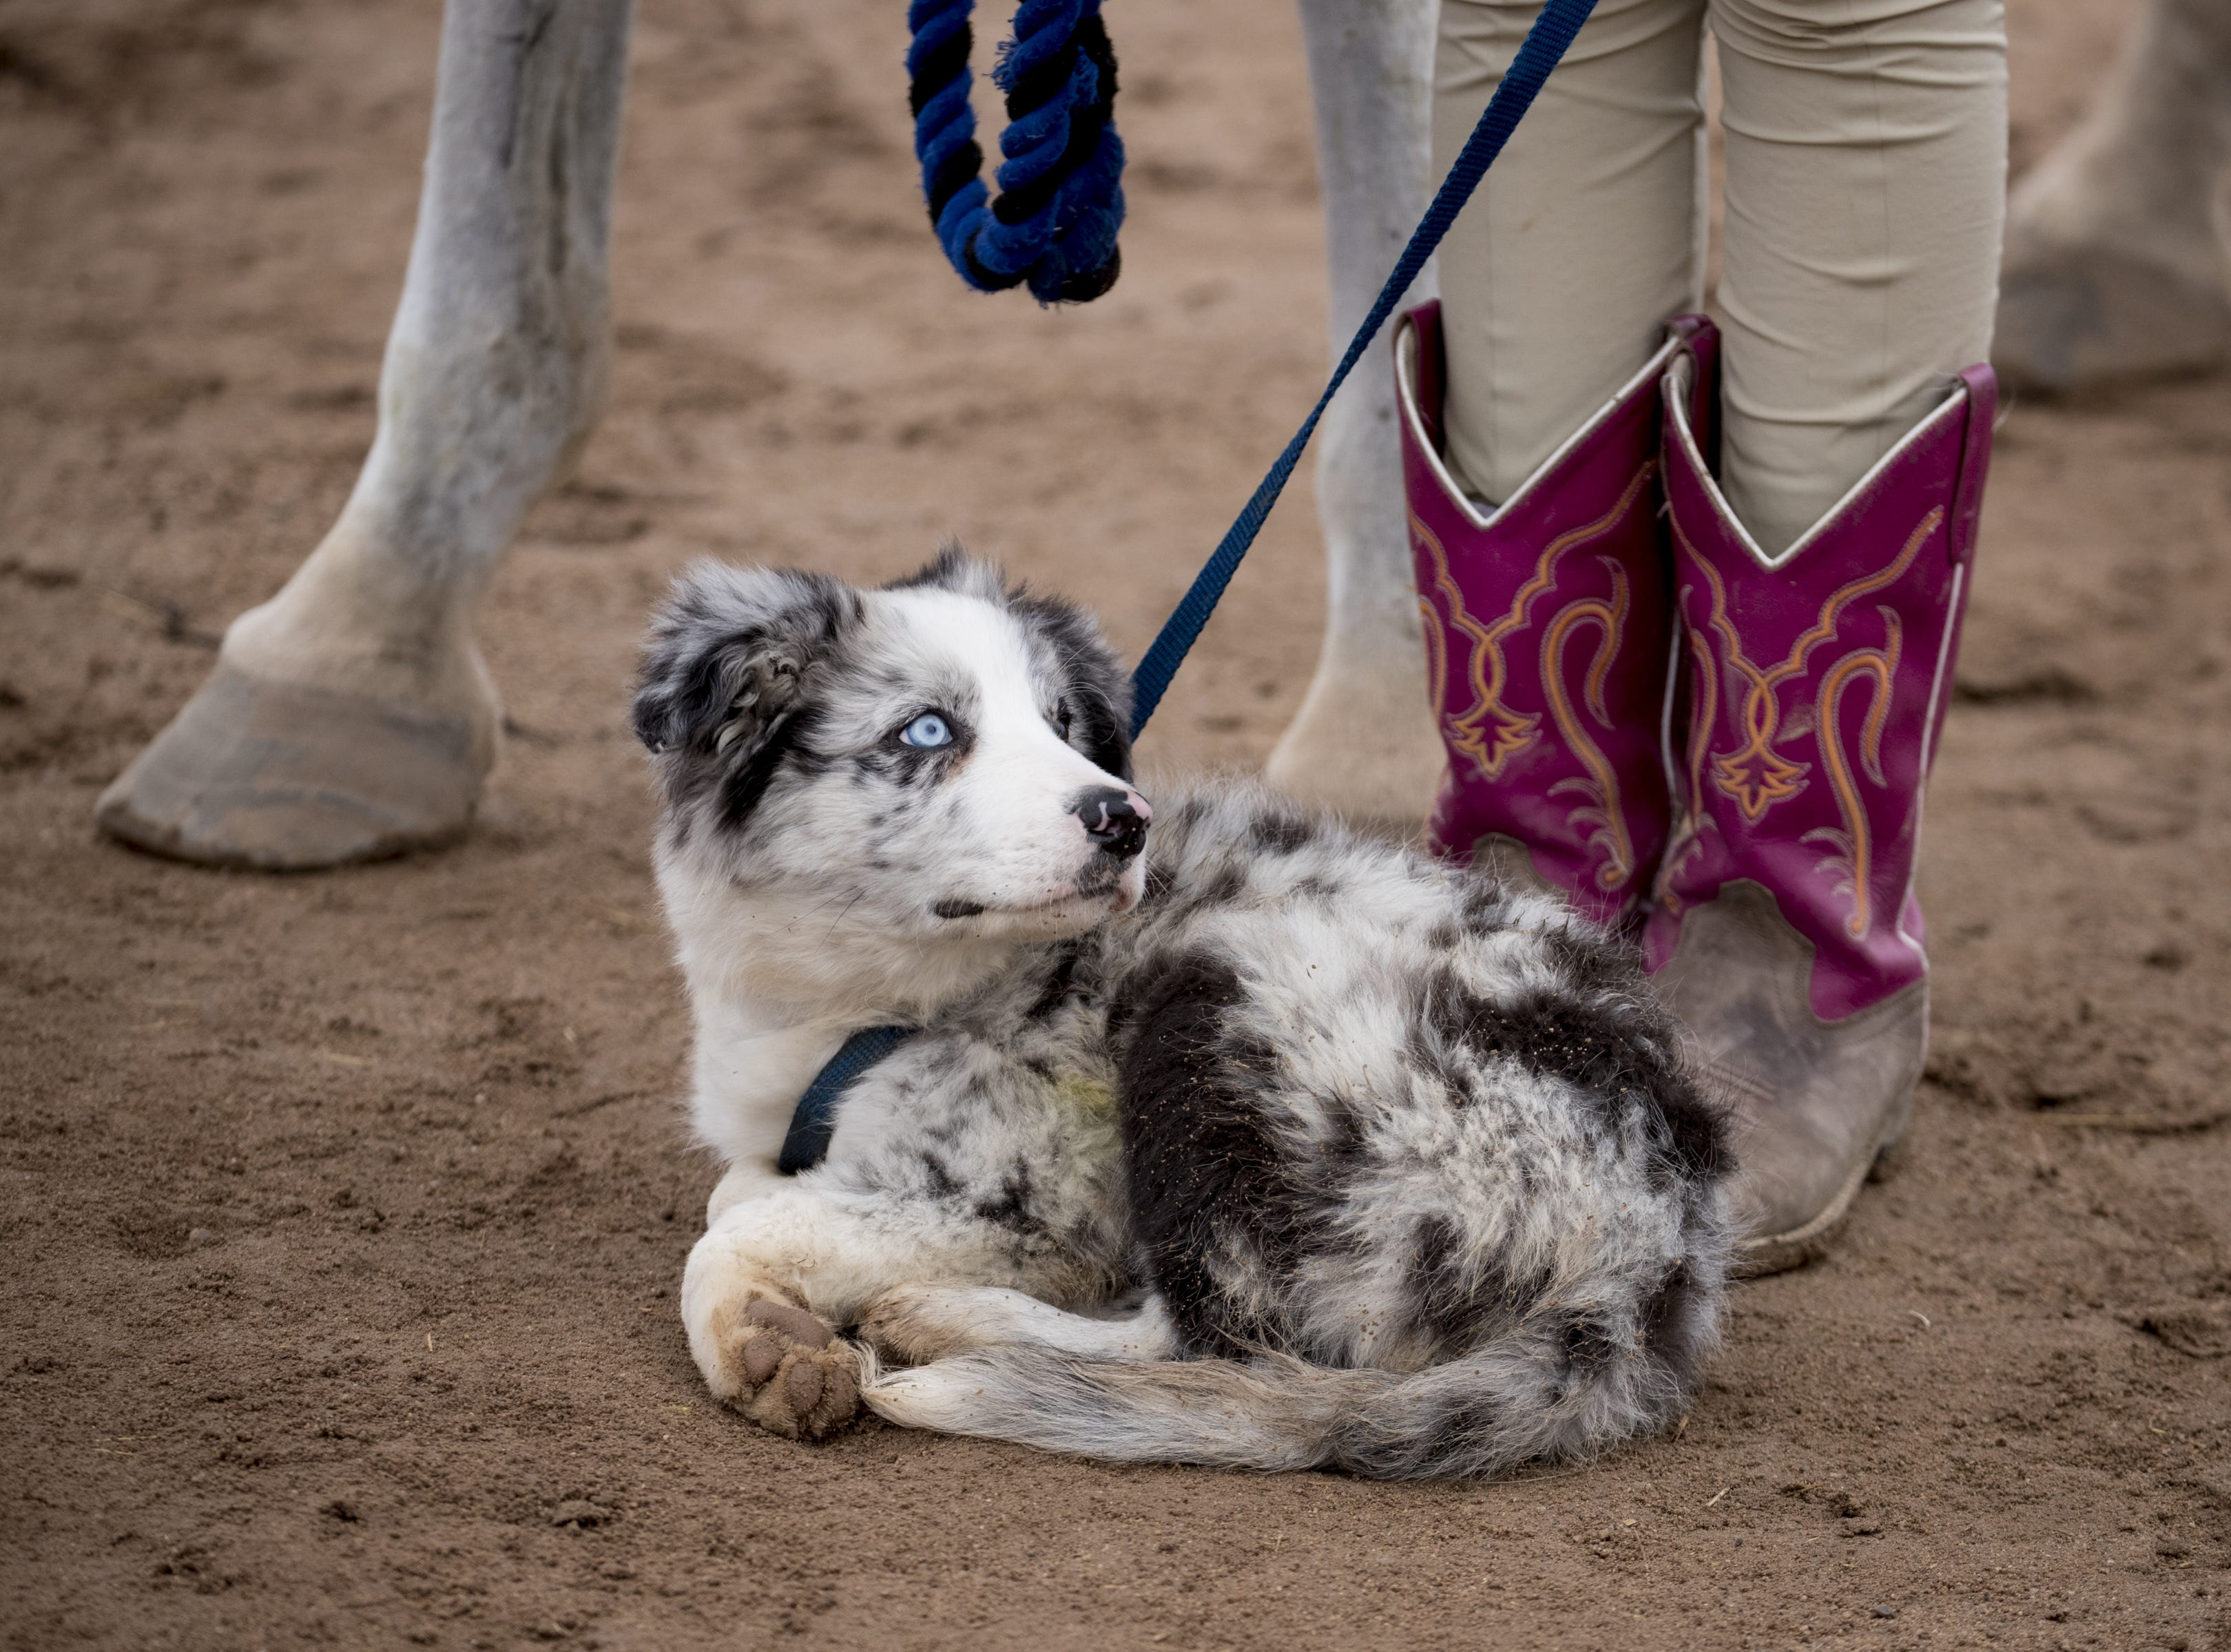 Tig, a 13-week old puppy from Caliber Farms, on Feb. 18, 2019, during the 64th Annual Scottsdale Arabian Horse Show at West World.